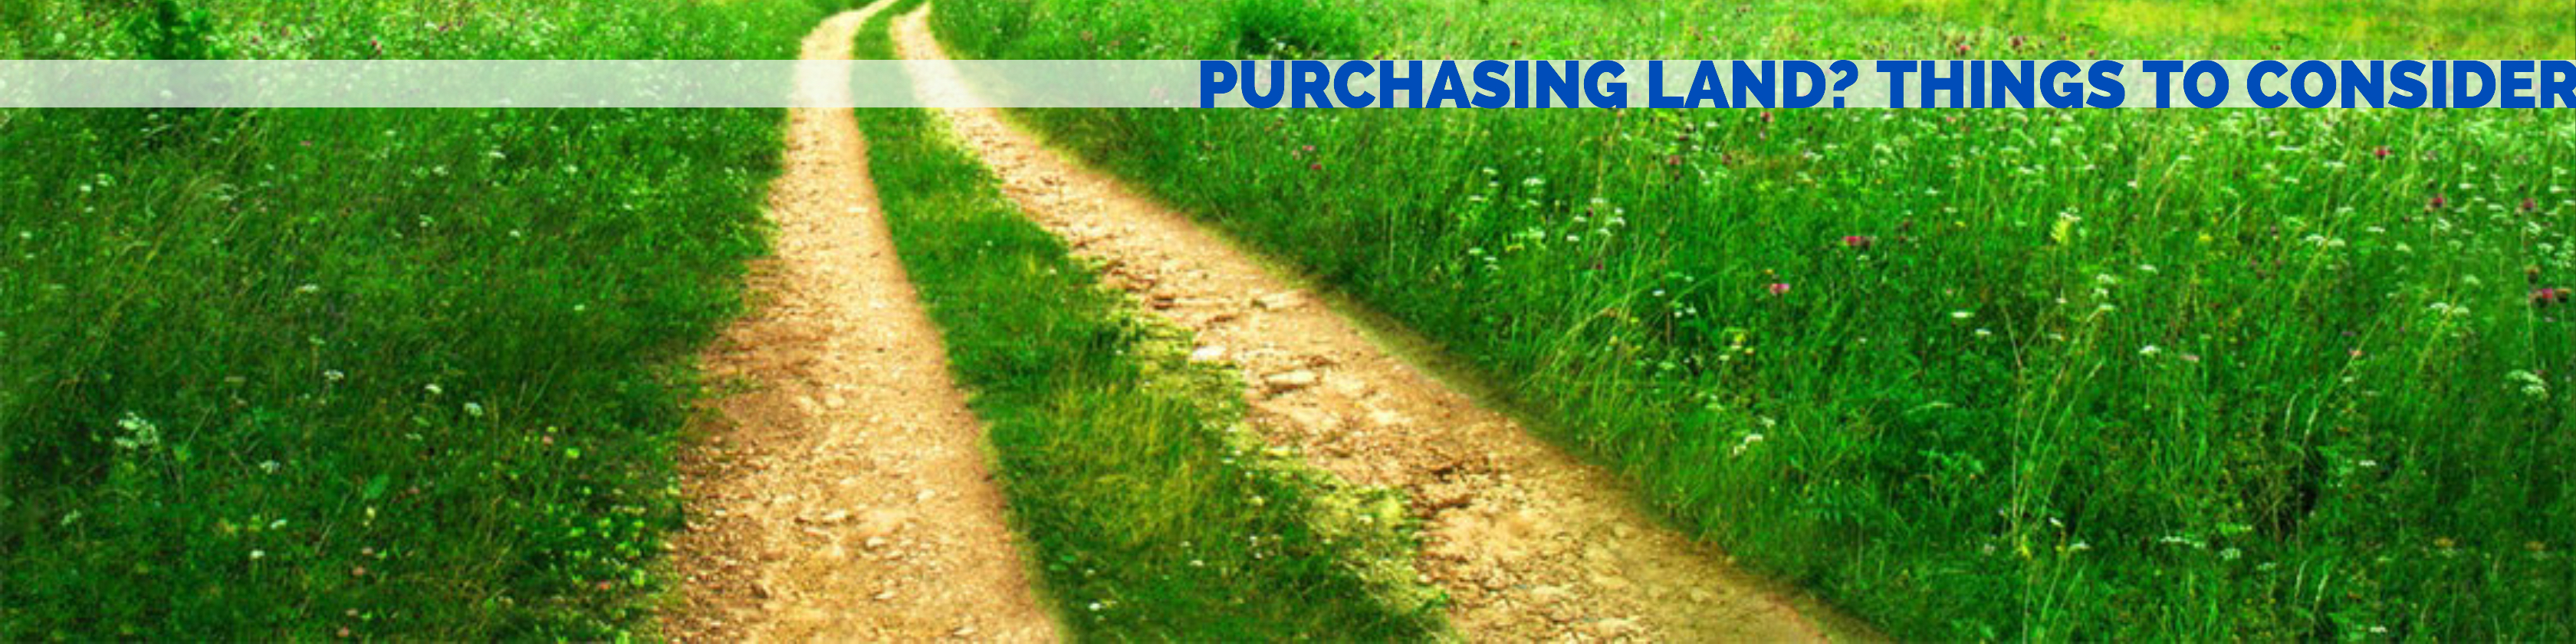 Purchasing Land - Things to Consider